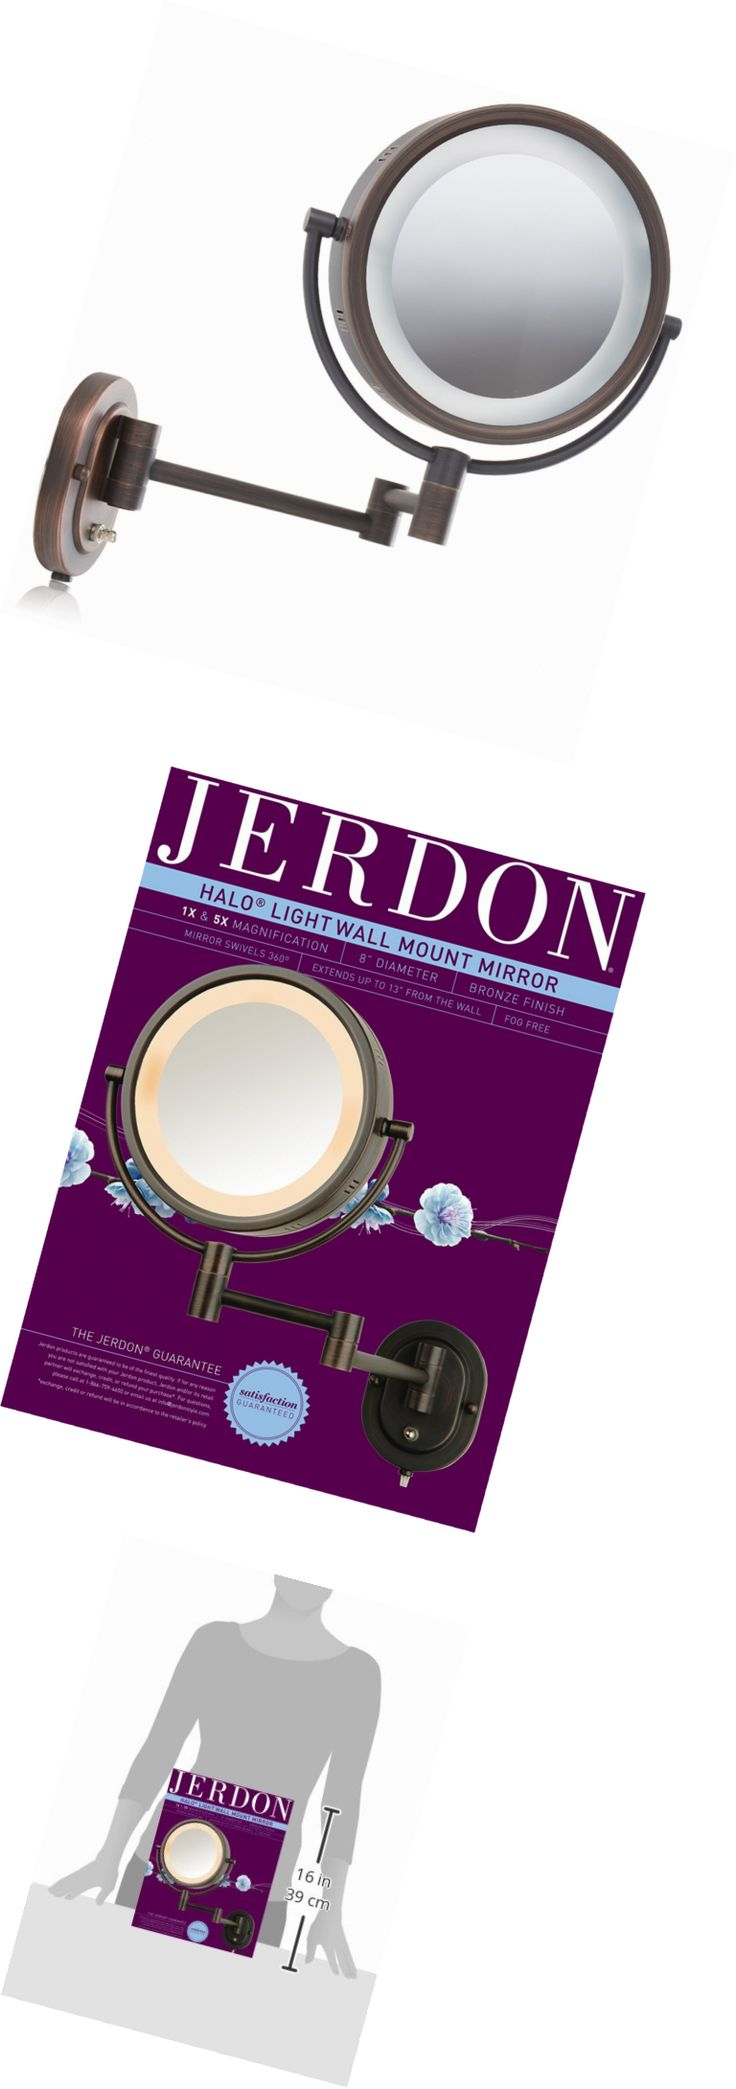 Makeup Mirrors: Jerdon Hl65bz 8-Inch Lighted Wall Mount Makeup Mirror With 5X Magnification, Bro -> BUY IT NOW ONLY: $55.05 on eBay!